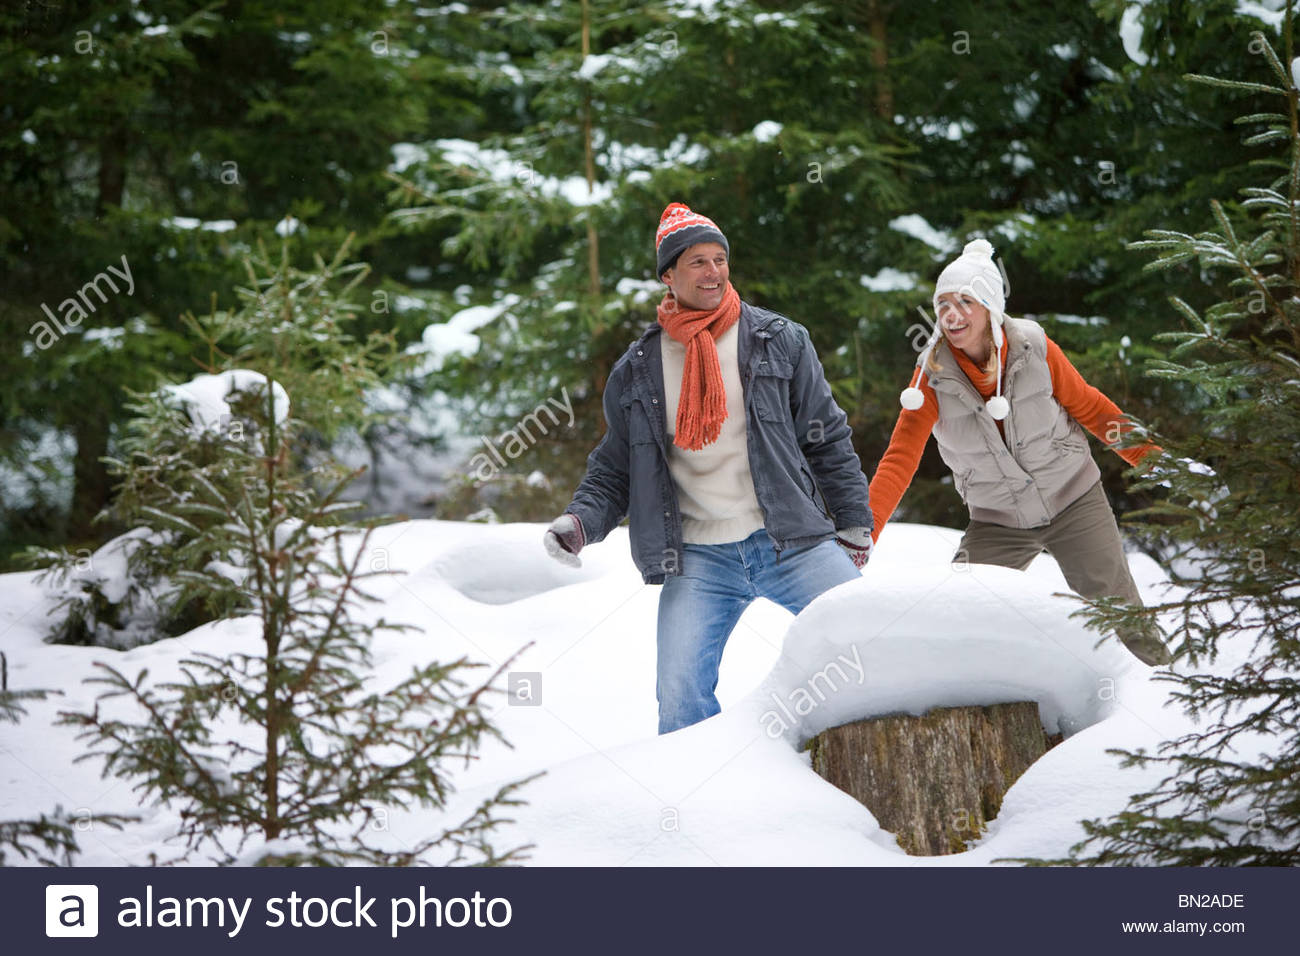 Playful couple holding hands in snowy woods - Stock Image